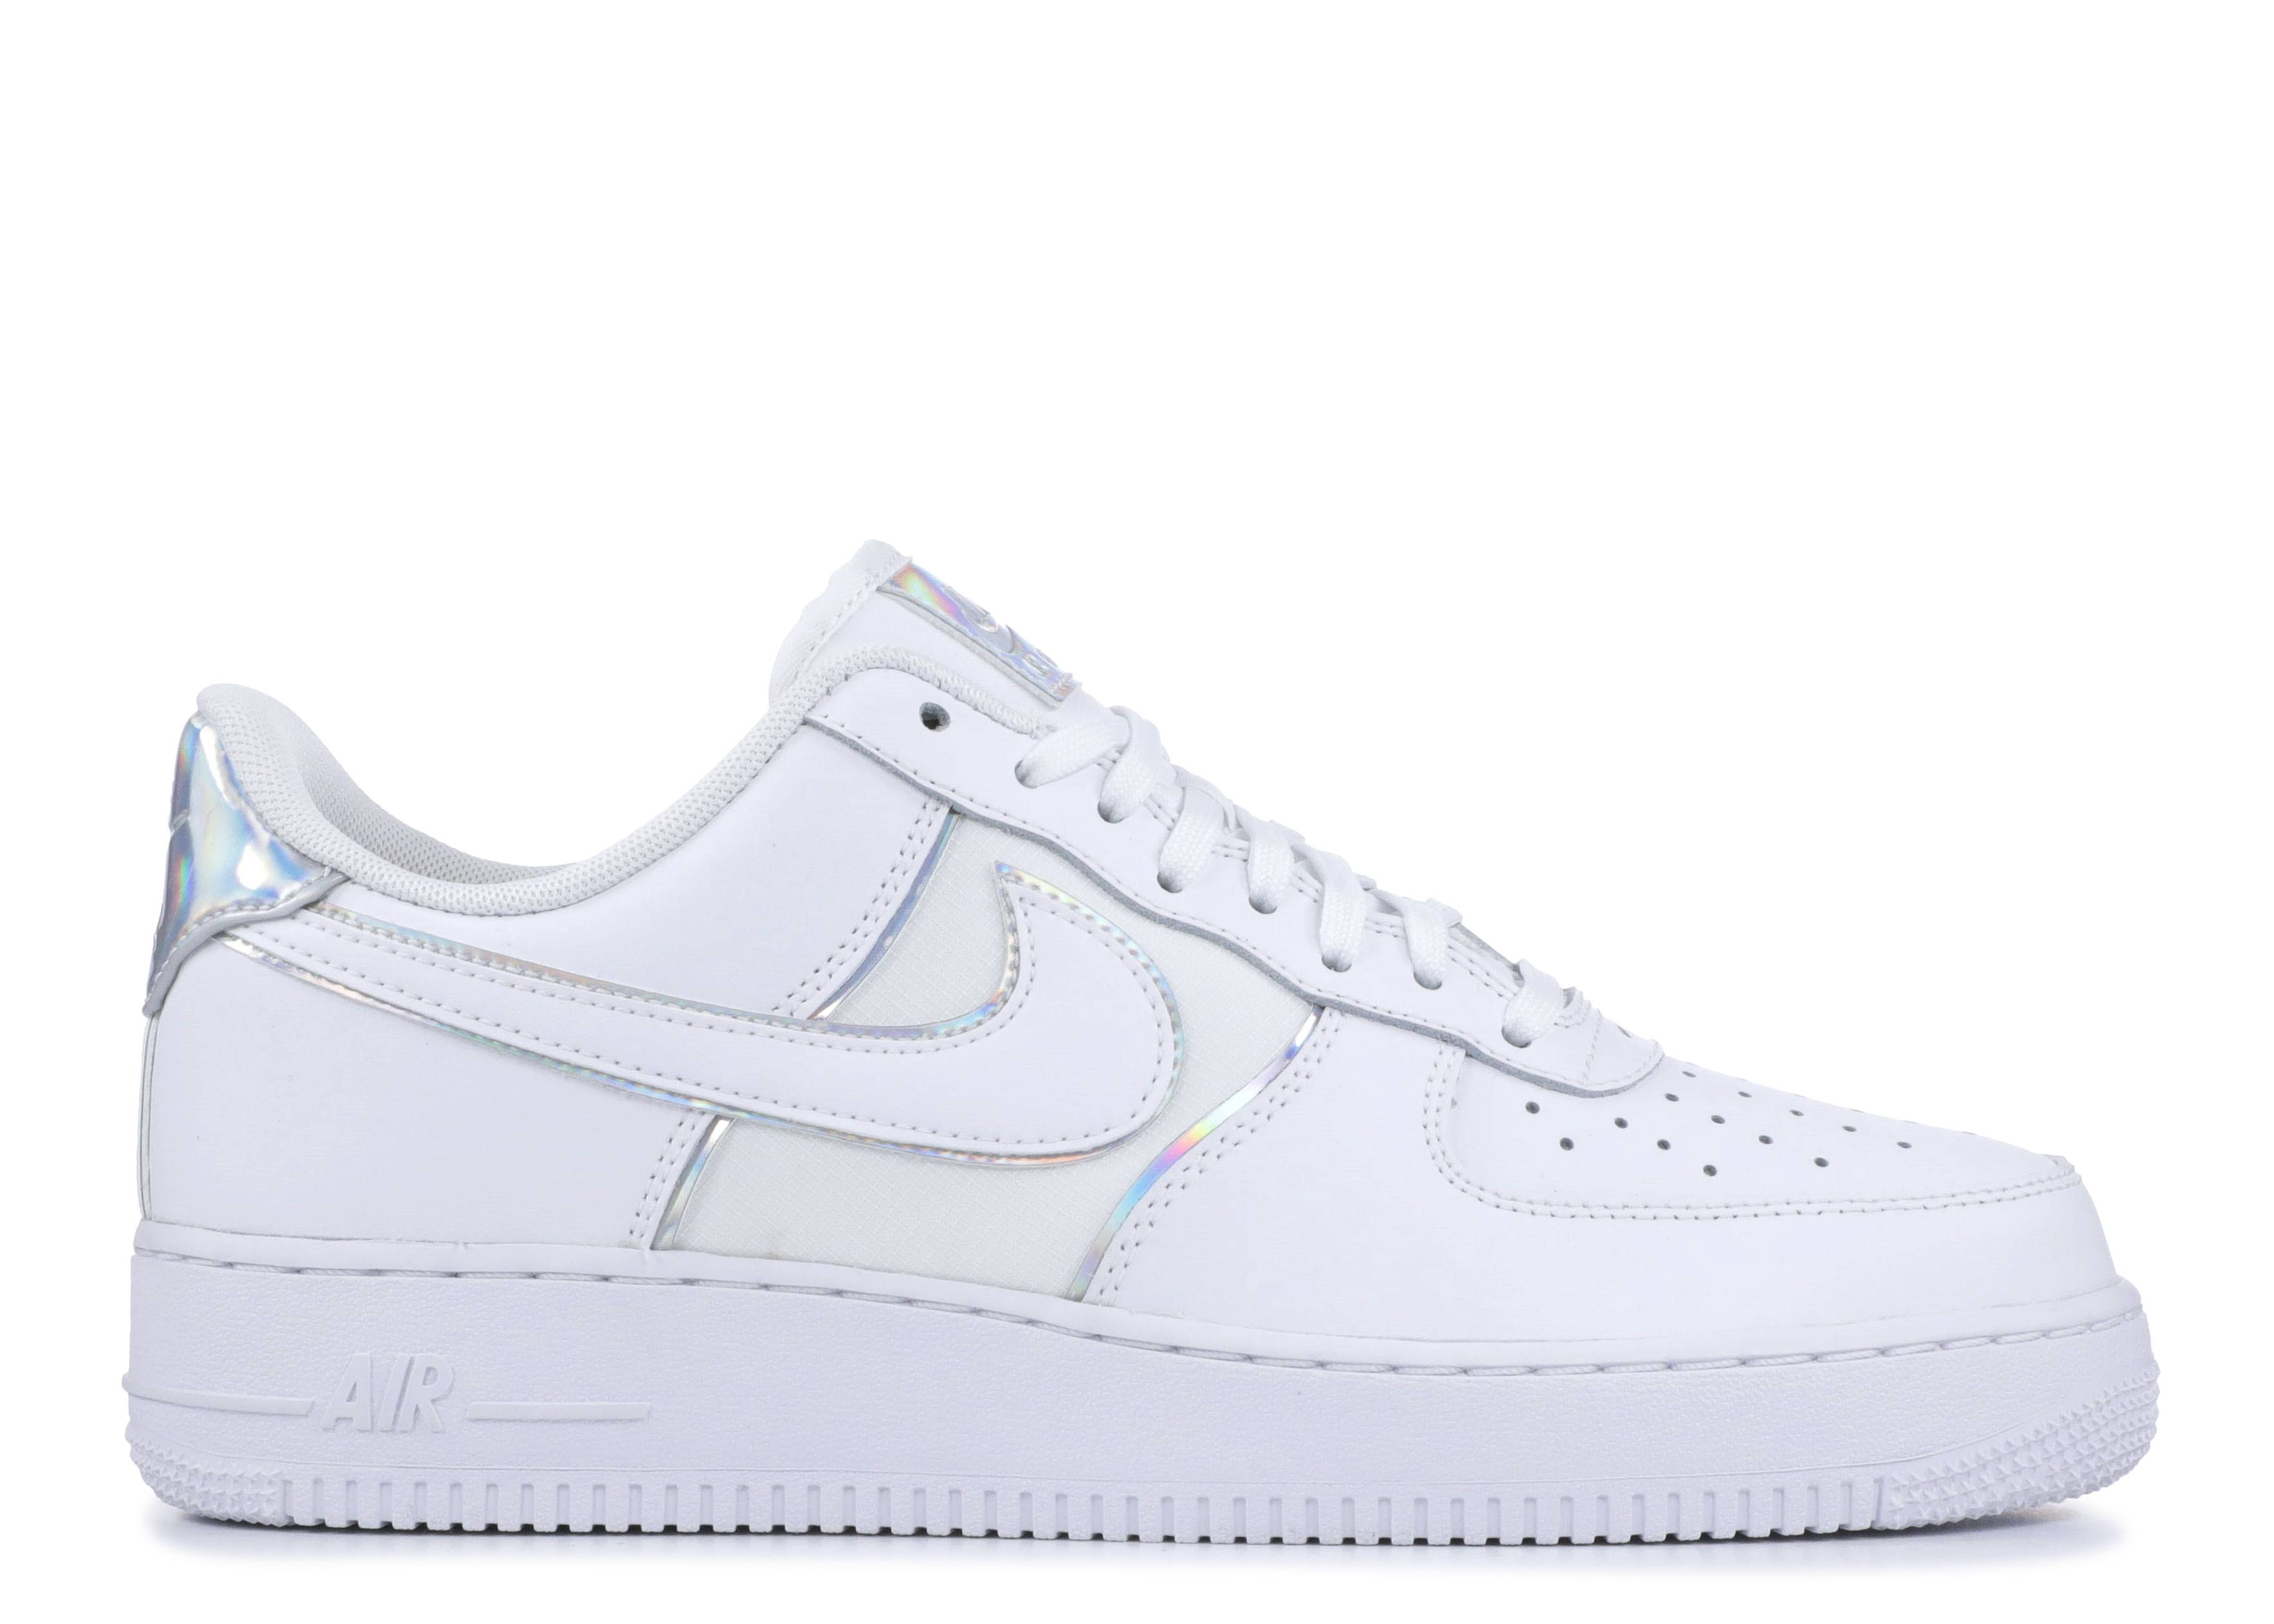 Nike Air Force 1 '07 LV8 4 WhiteWhite White – Feature